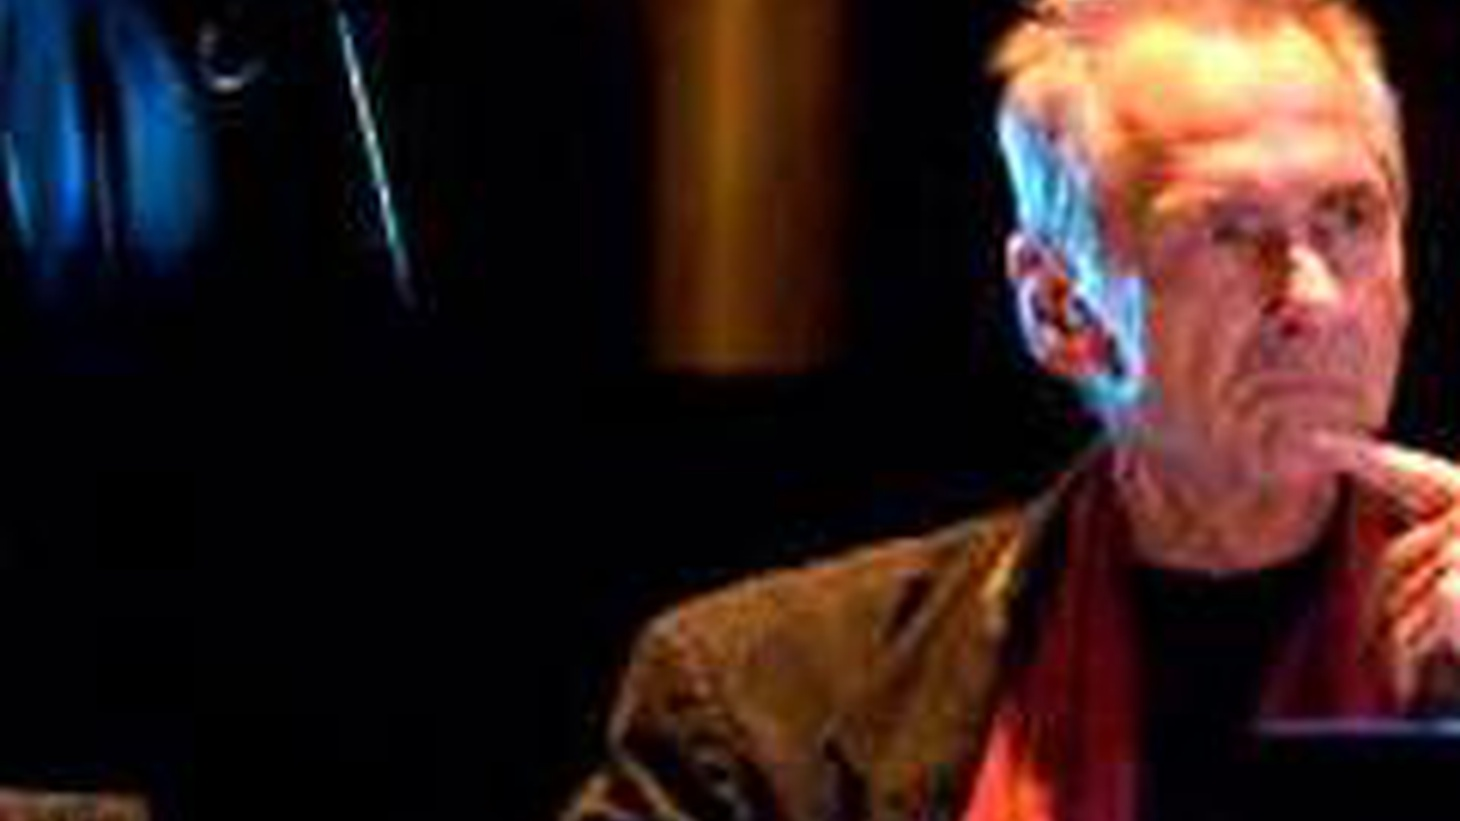 Trumpeter and composer Jon Hassell shares his latest release Last Night the Moon Came Dropping It's Clothes in the Street as guest deejay on Morning Becomes Eclectic at 11:15am.